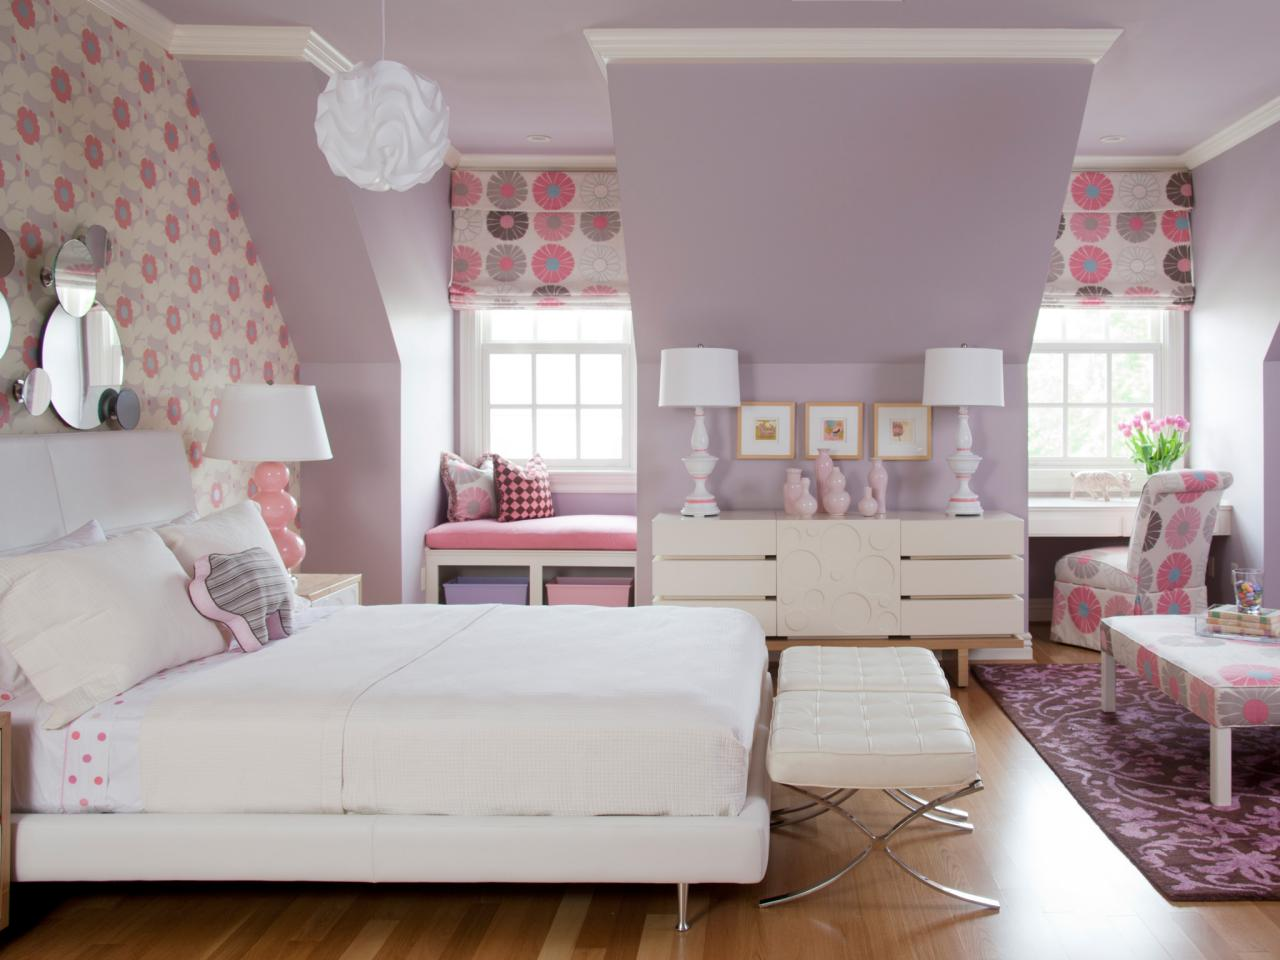 Wall paint colors for girls bedroom - Coral And Kelly Green Bedroom